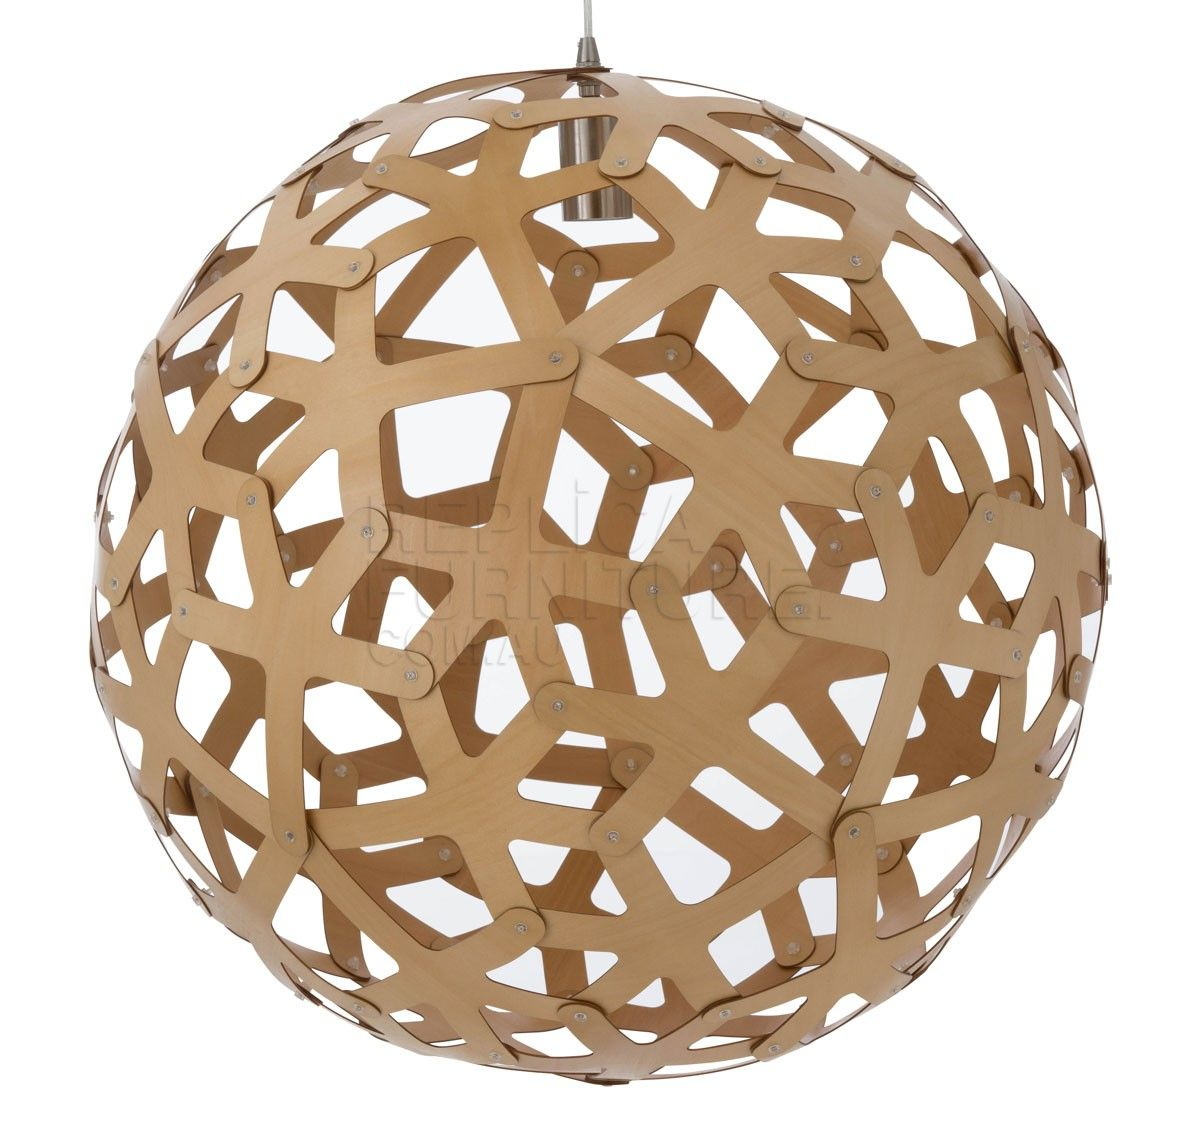 Replica david trubridge coral pendant 60cm the replica david coral pendant light by david trubridge replica replica lighting australia audiocablefo